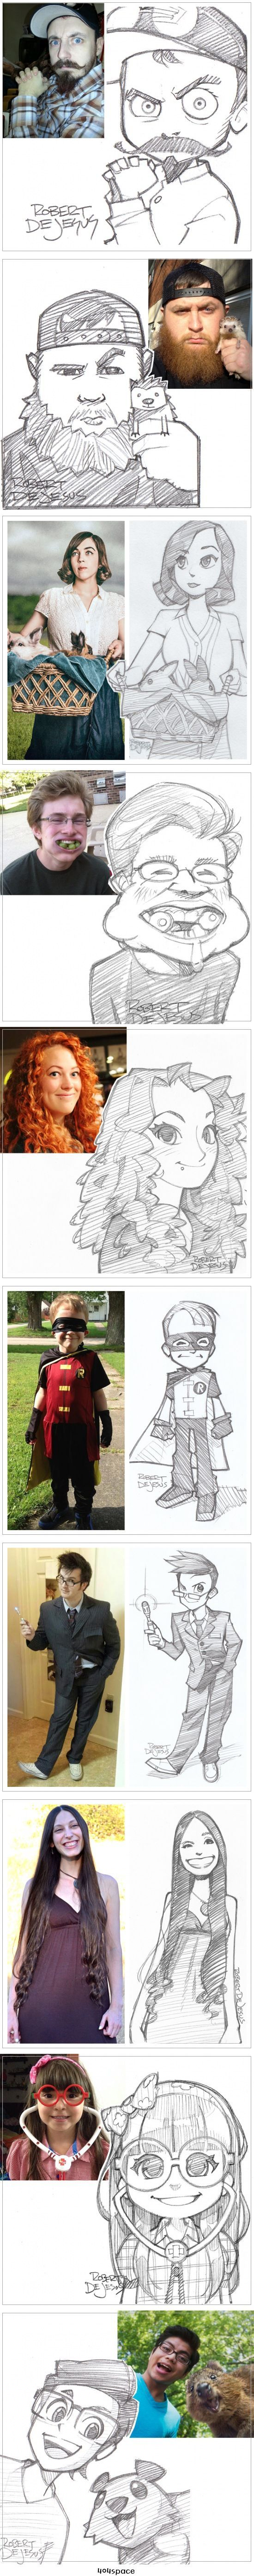 Creative Artist Robert DeJesus Turns Strangers' Photographs Into Anime-Inspired Sketches (10 Pictures + Clip):